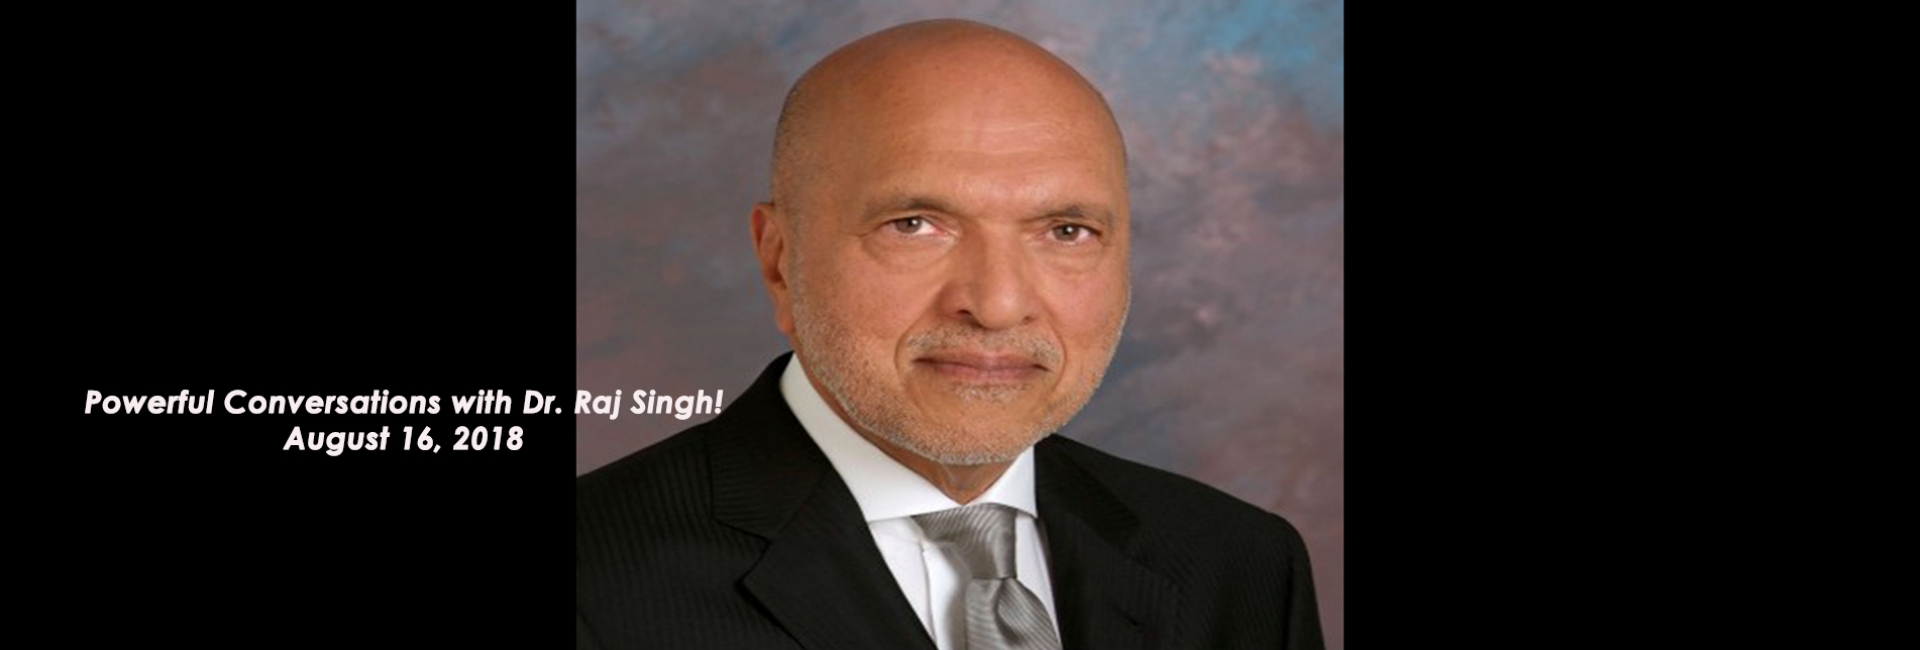 RSVP HERE!  JOIN DR. LAKIN FOR AN INTERESTING EVENING WITH DR. RAJ SINGH